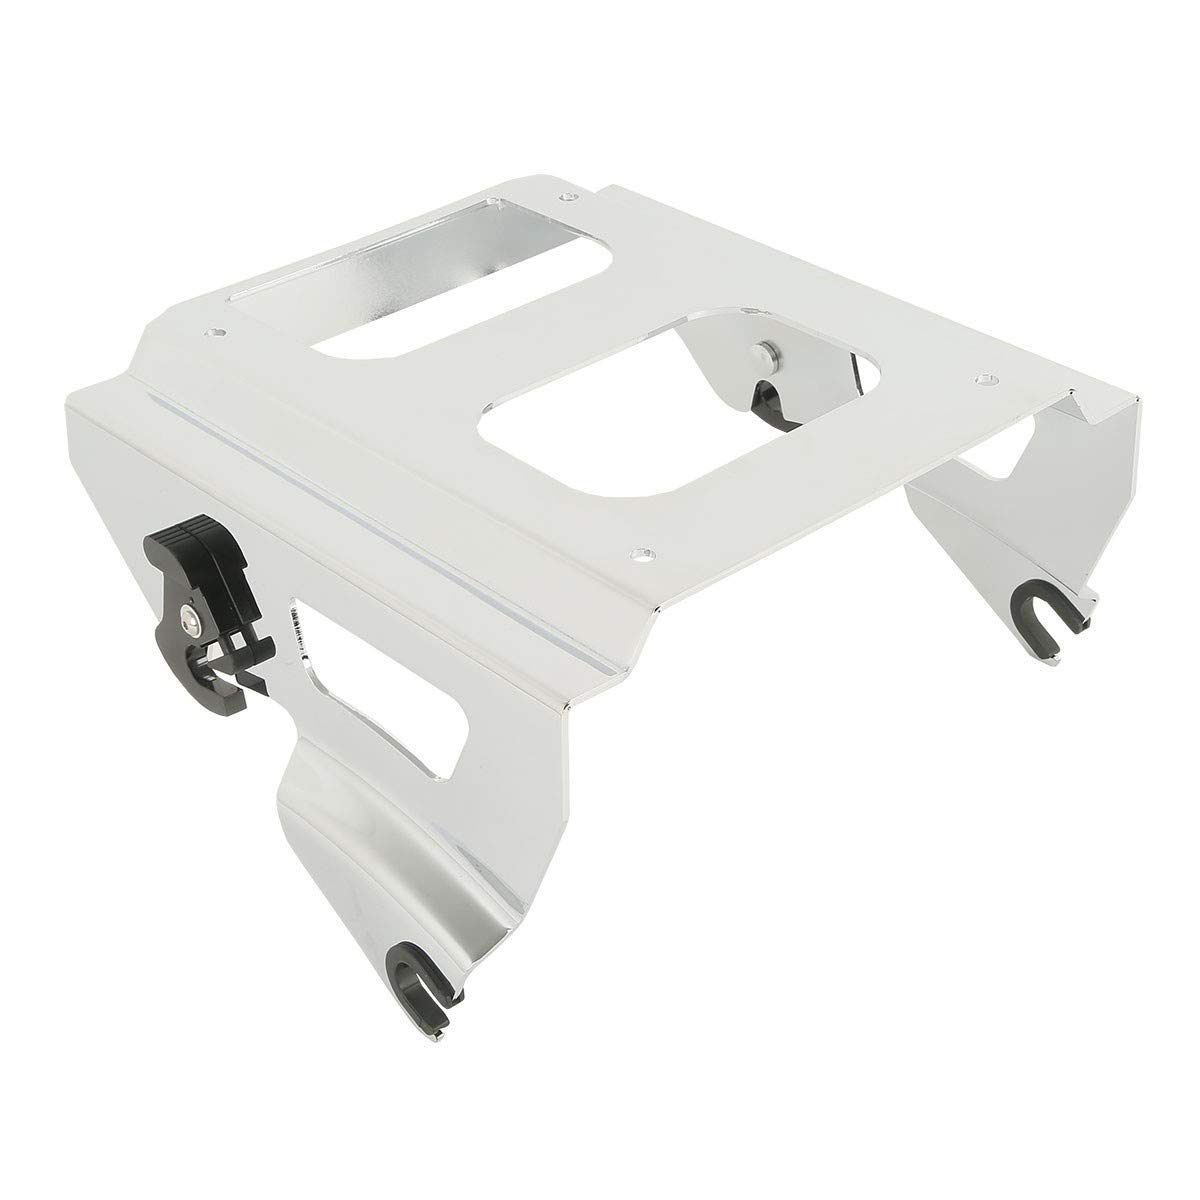 TCMT Detachable Solo Tour Pack Mount Rack Fits For Harley Touring Road King Glide 2009-2013